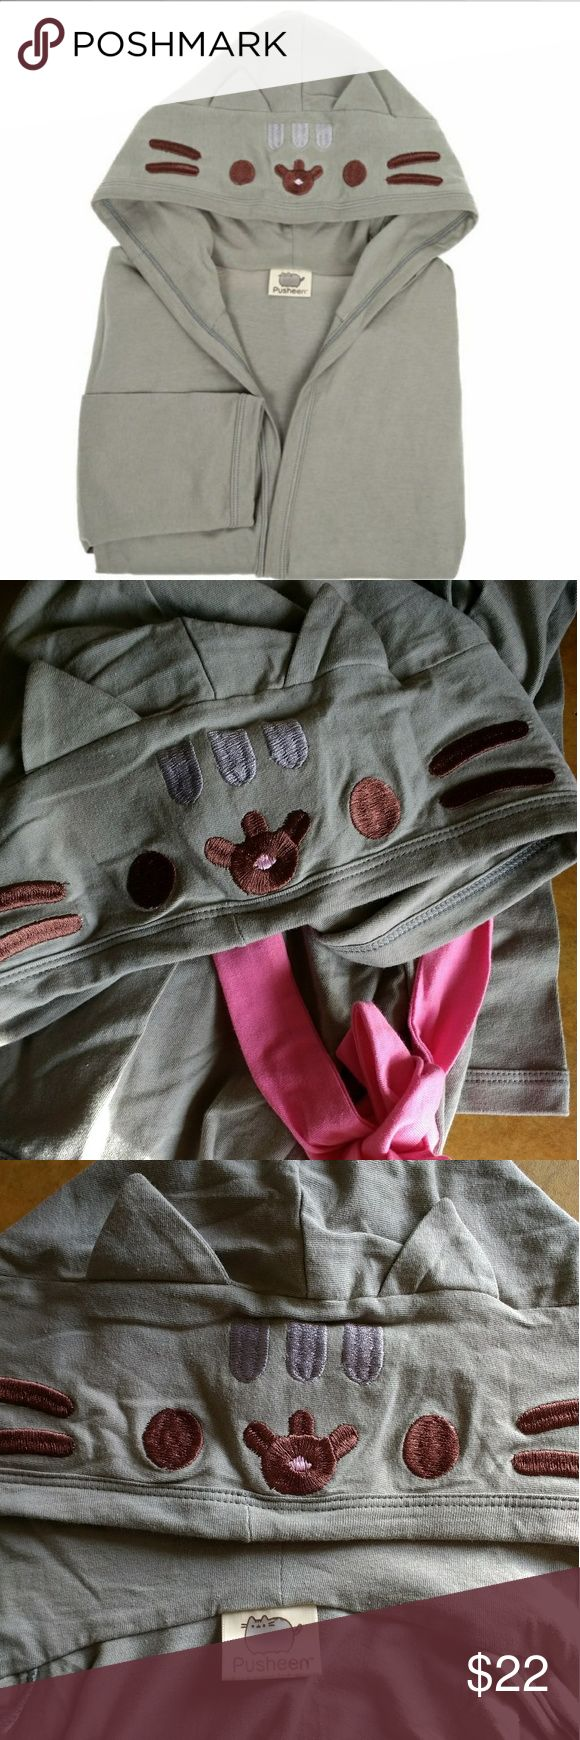 Pusheen the Cat Sleeping Robe 😻 NEW tag fell off Get cozy with this super cute Pusheen the cat robe. Colors Gray and Pink adjustable strap on the waistline. It's 100% Cotton. Sleeping robe for girls size 16. Measurements when laying flat: ~ 30 in length from the hood seam till the bottom. ~ 17 in armpit to armpit (chest) at ease. Of course you can put it on and it doesn't necessarily have to close all the way to be worn. I was very surprised when I was measuring, I tried it on and it fit…